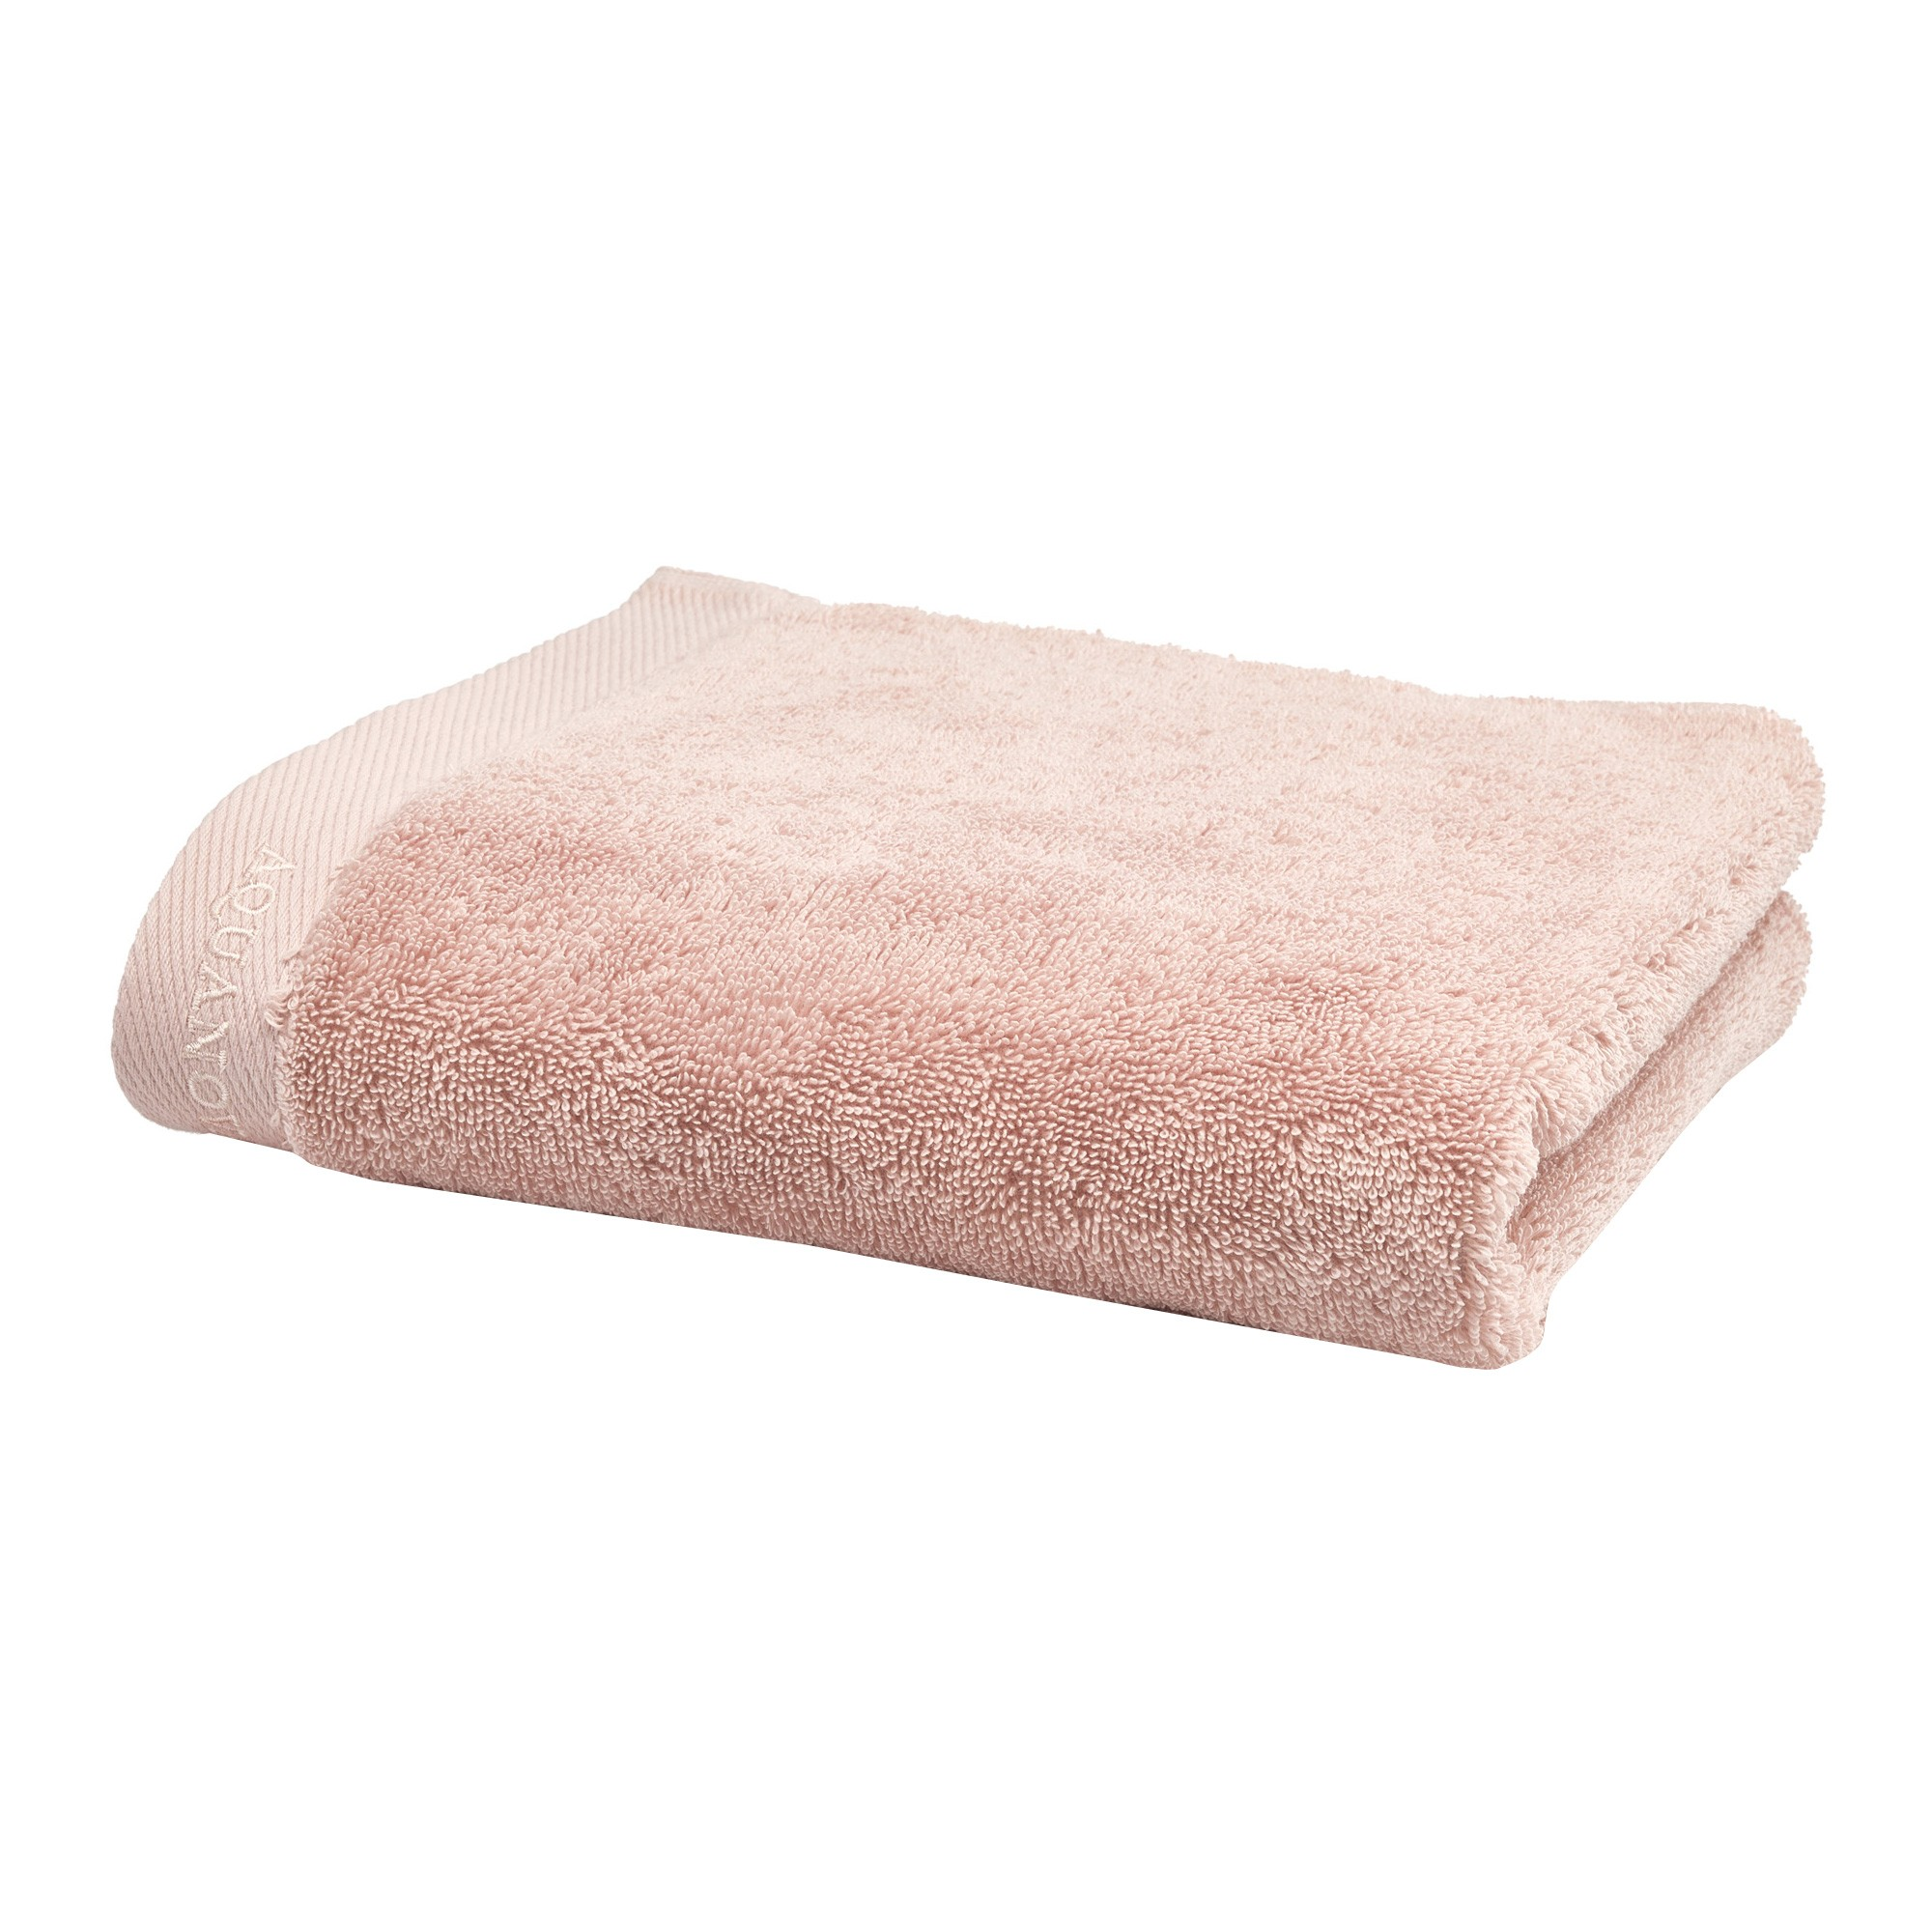 Aquanova Milan Cotton Hand Towel, Pink